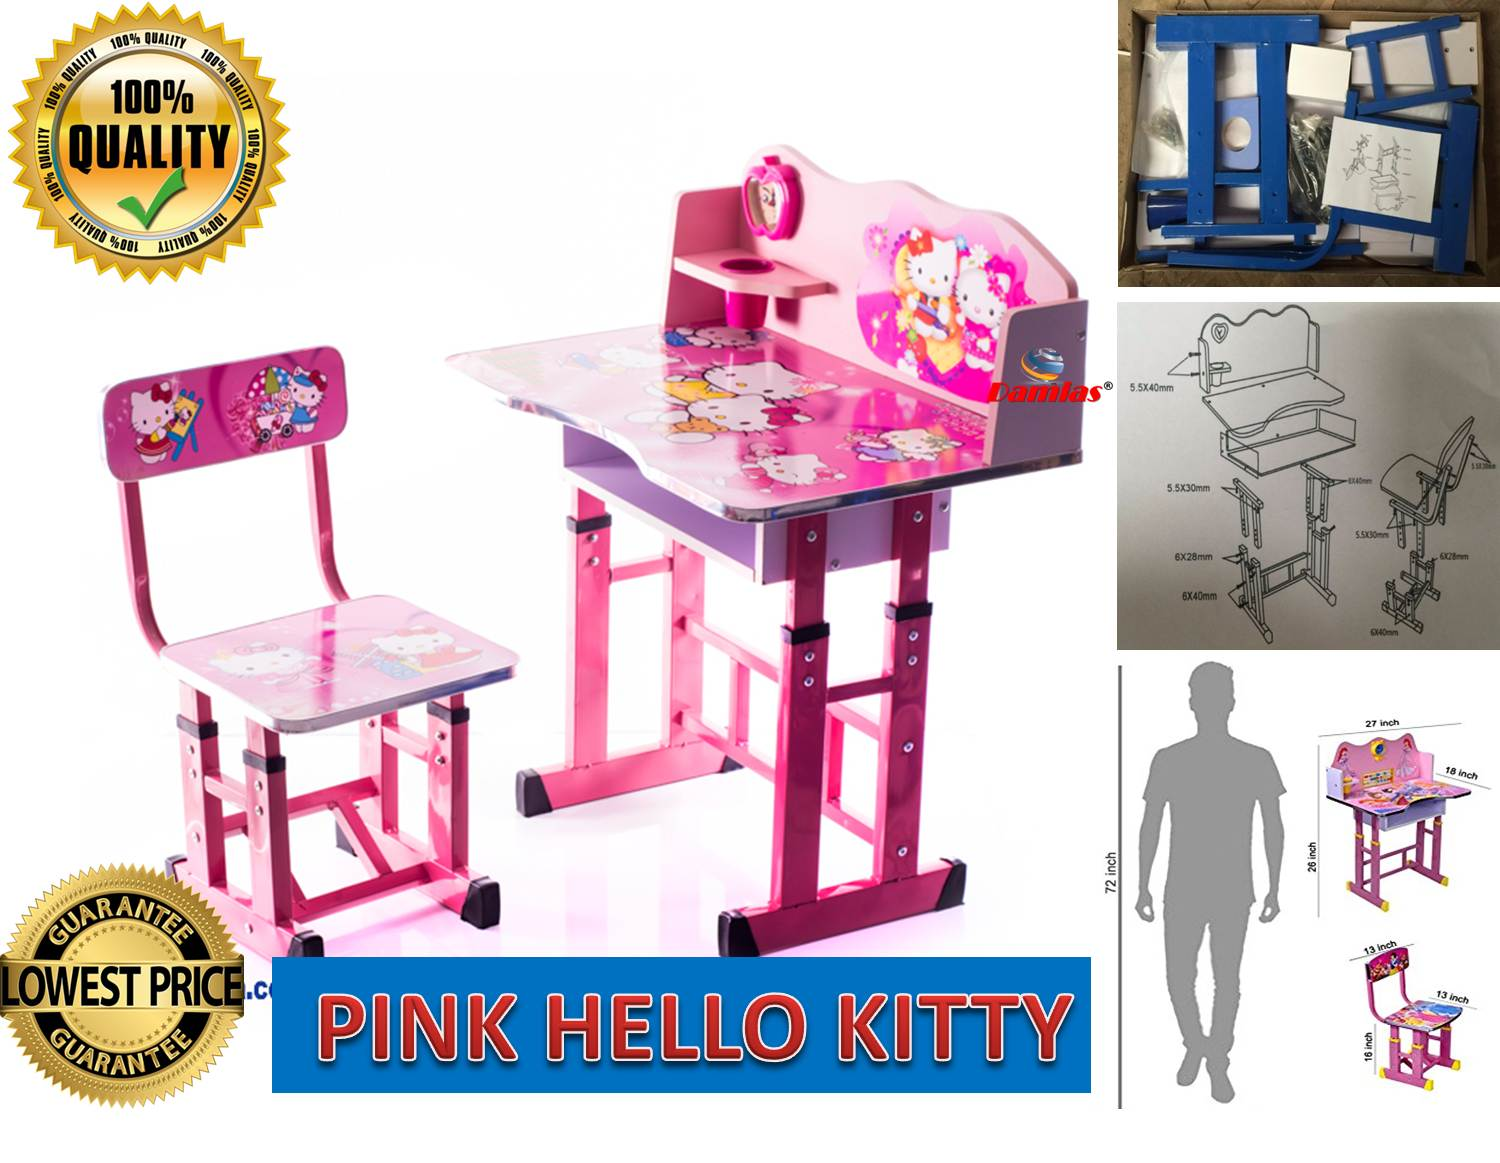 hello kitty high chair flip out sleeper study table and kid set with c end 3 4 2021 12 00 am